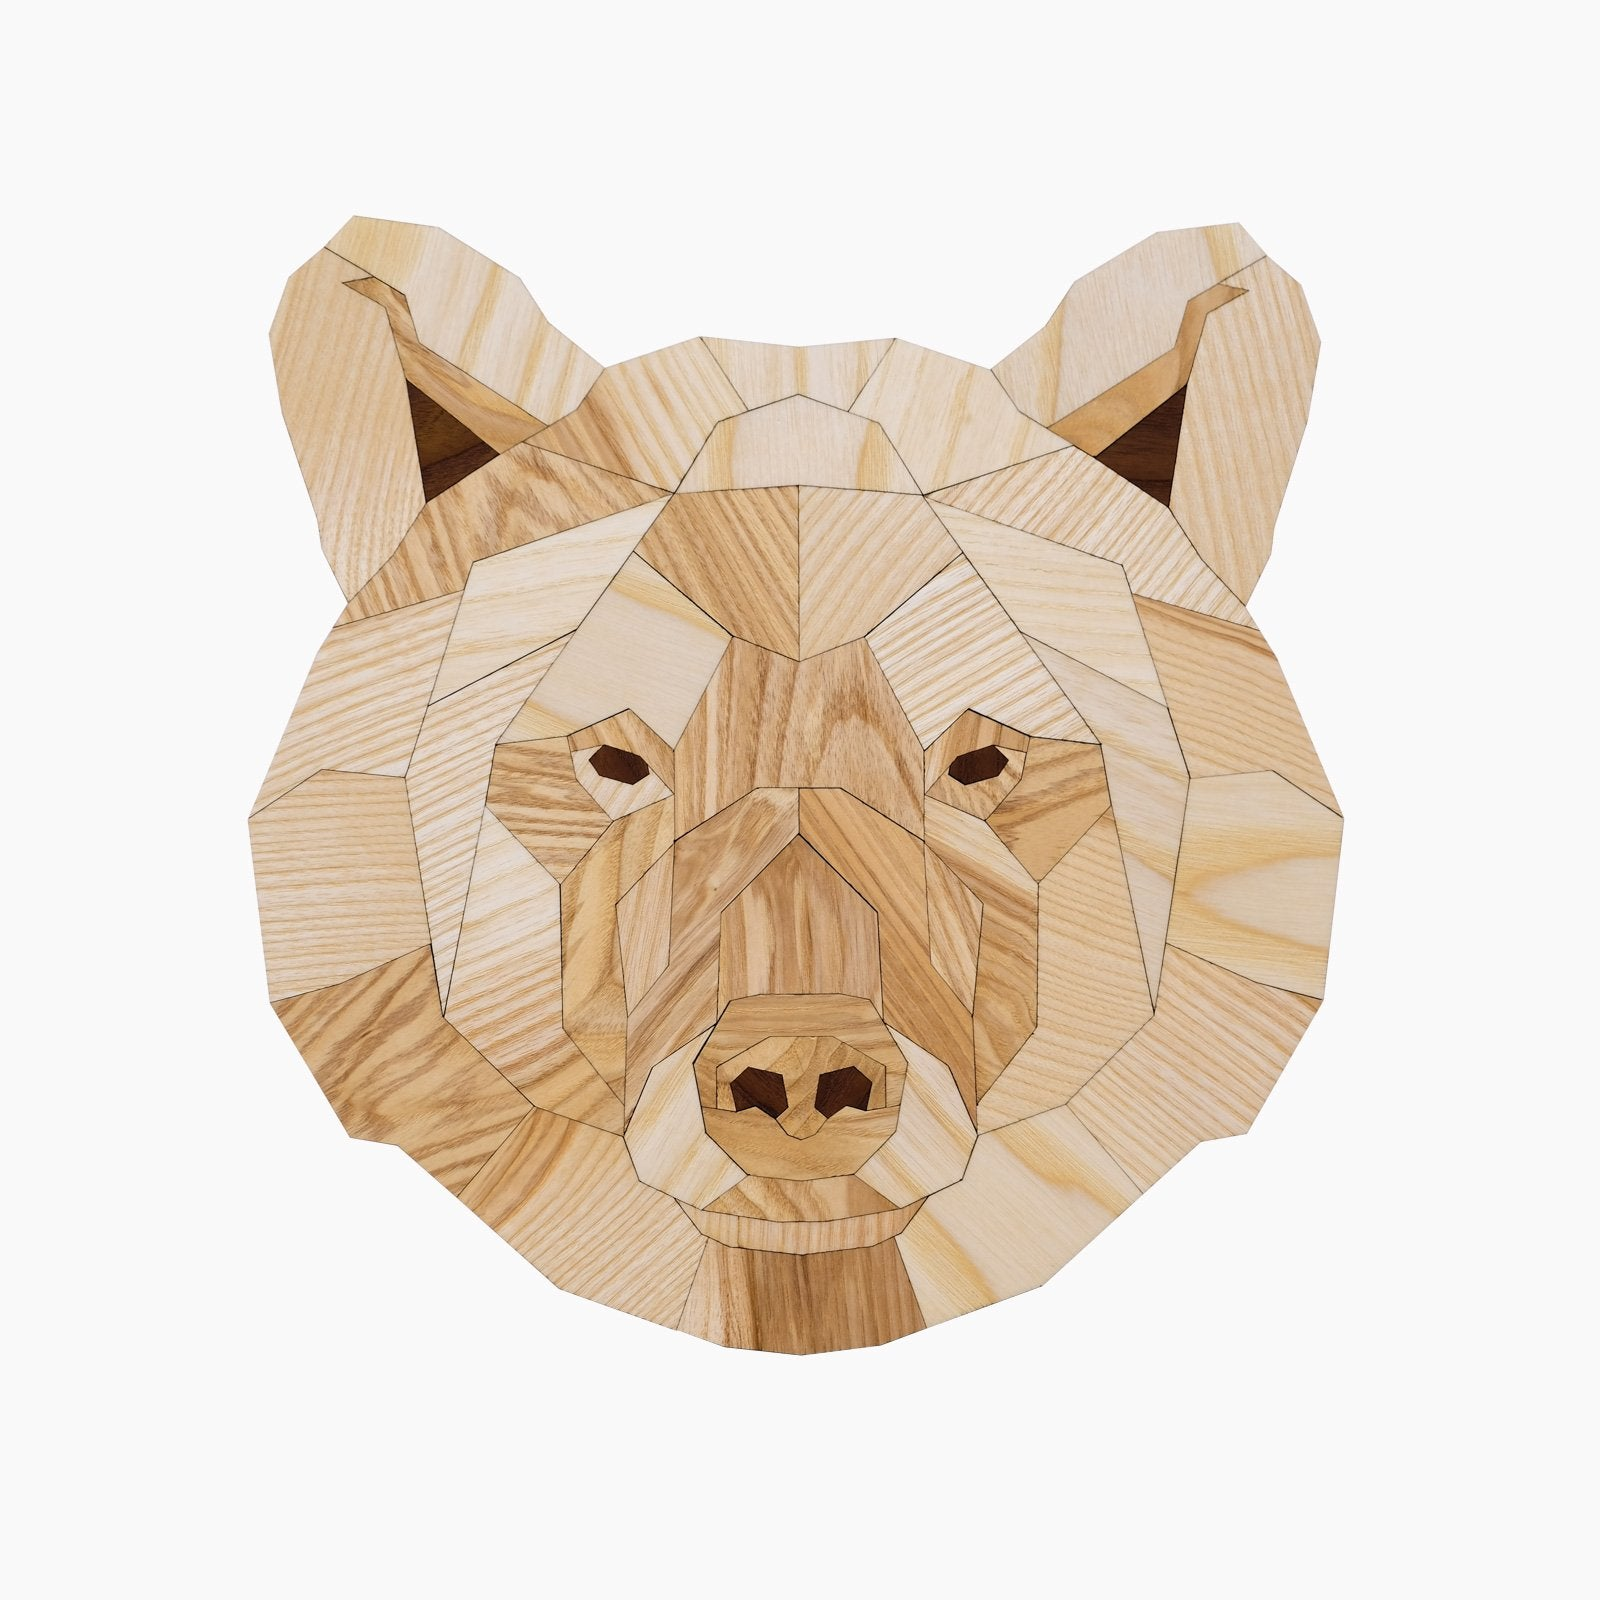 ours bear beer latete design animal dier wood hout